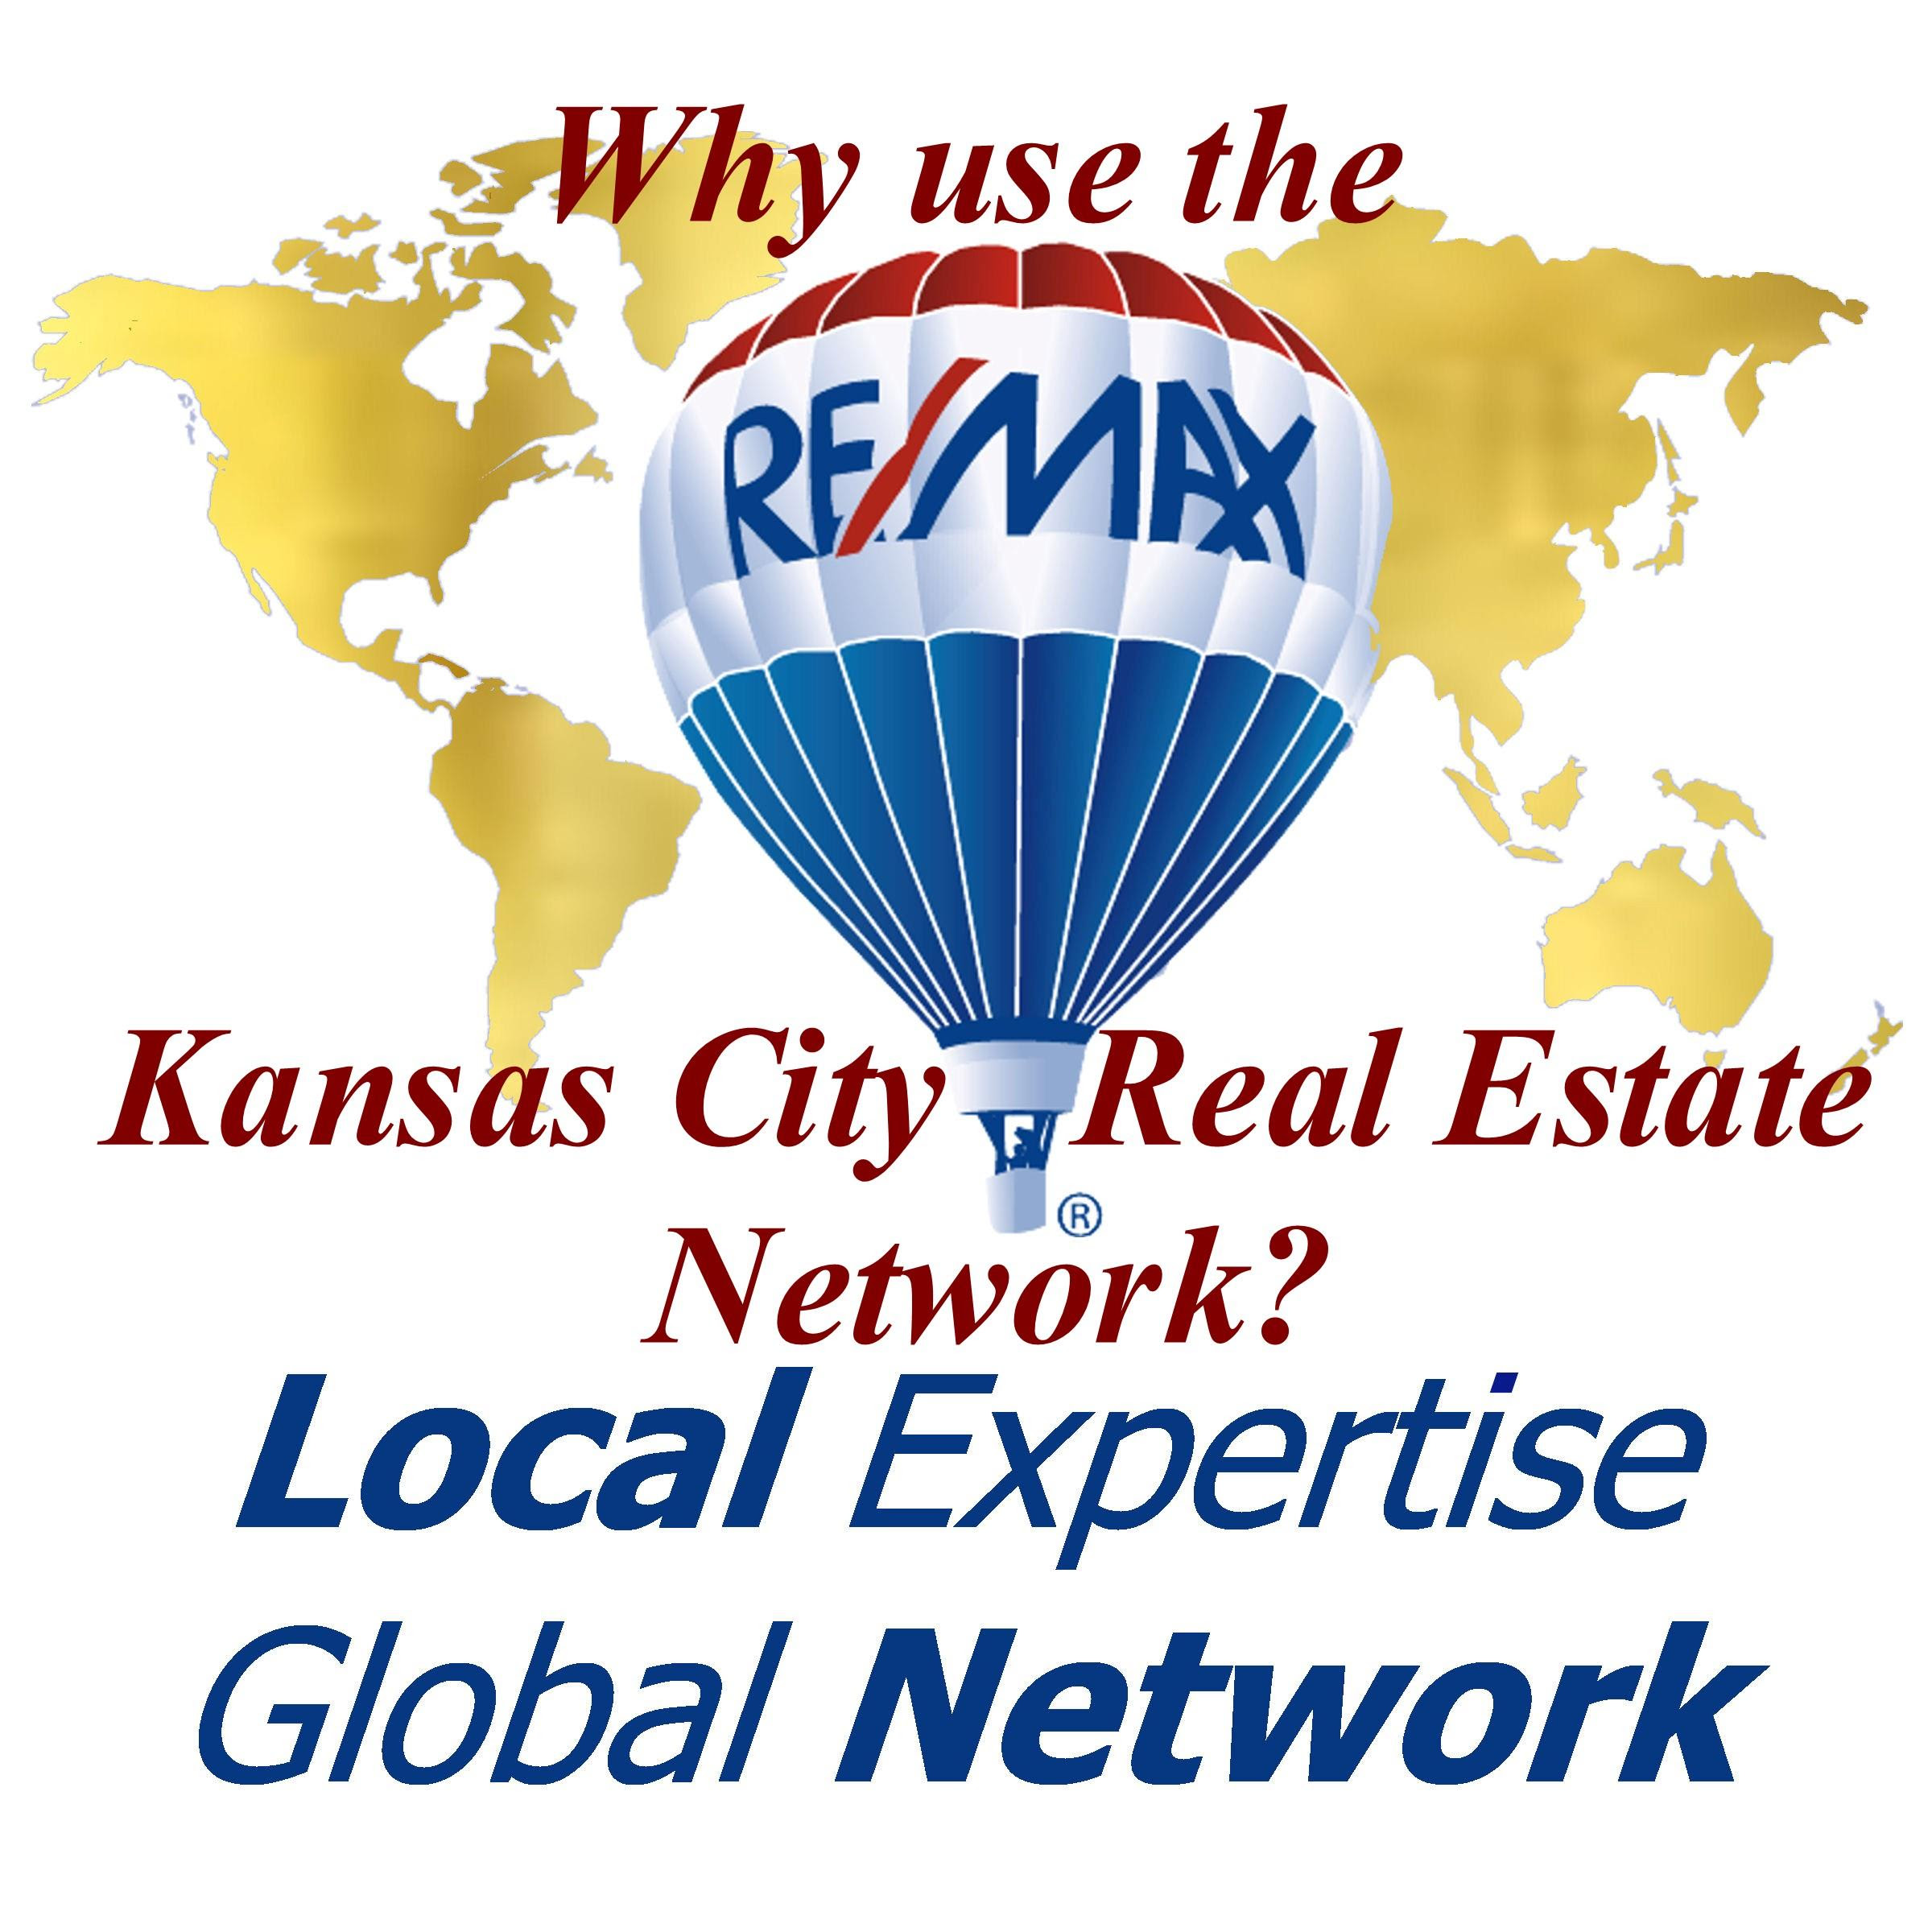 why use kansas city real estate network